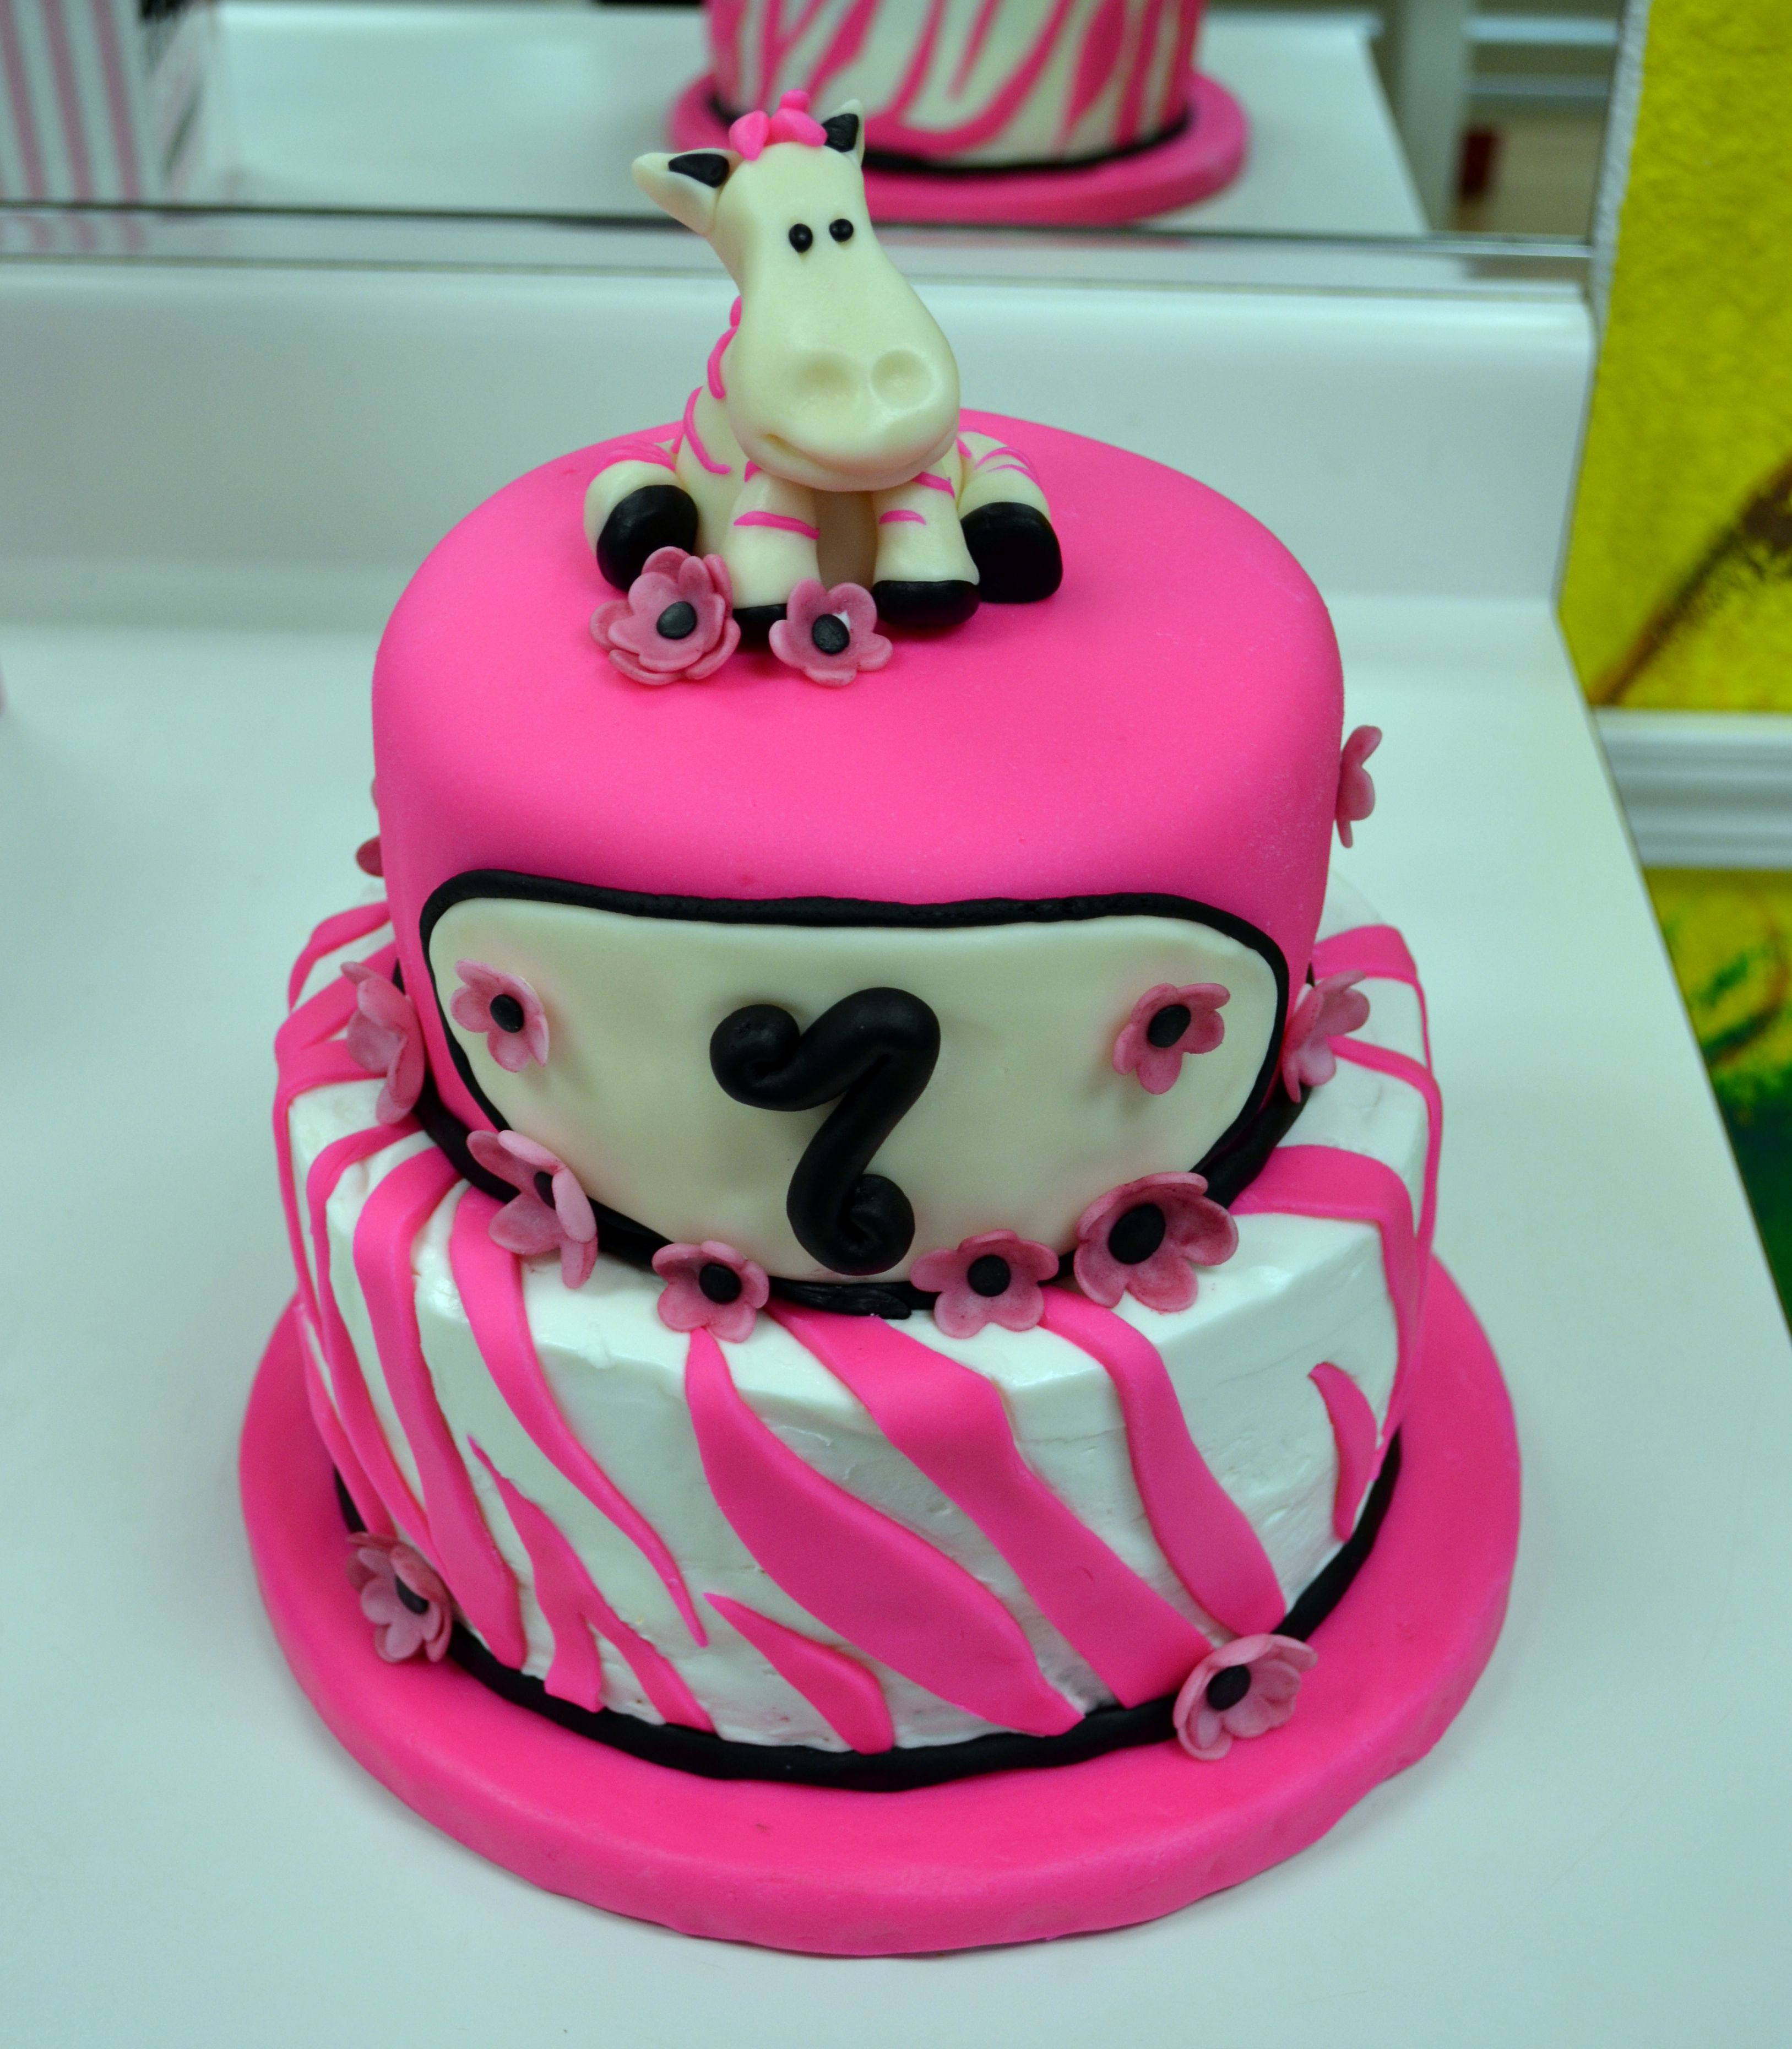 Hot Pink Zebra cake For Gracies 7th birthday 2layer 6 inch round